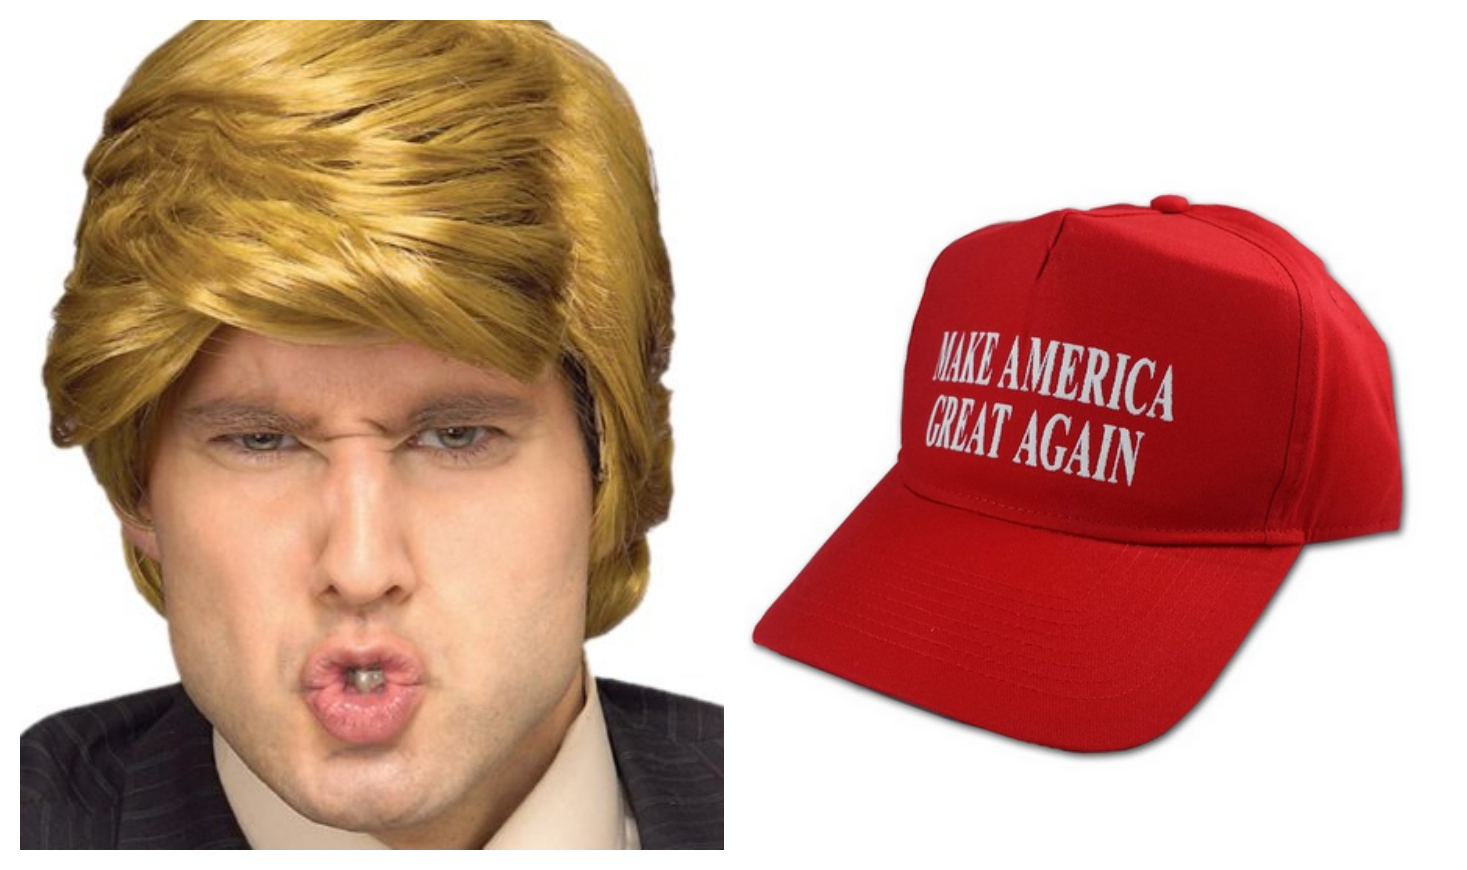 donald trump wig and hat halloween costume